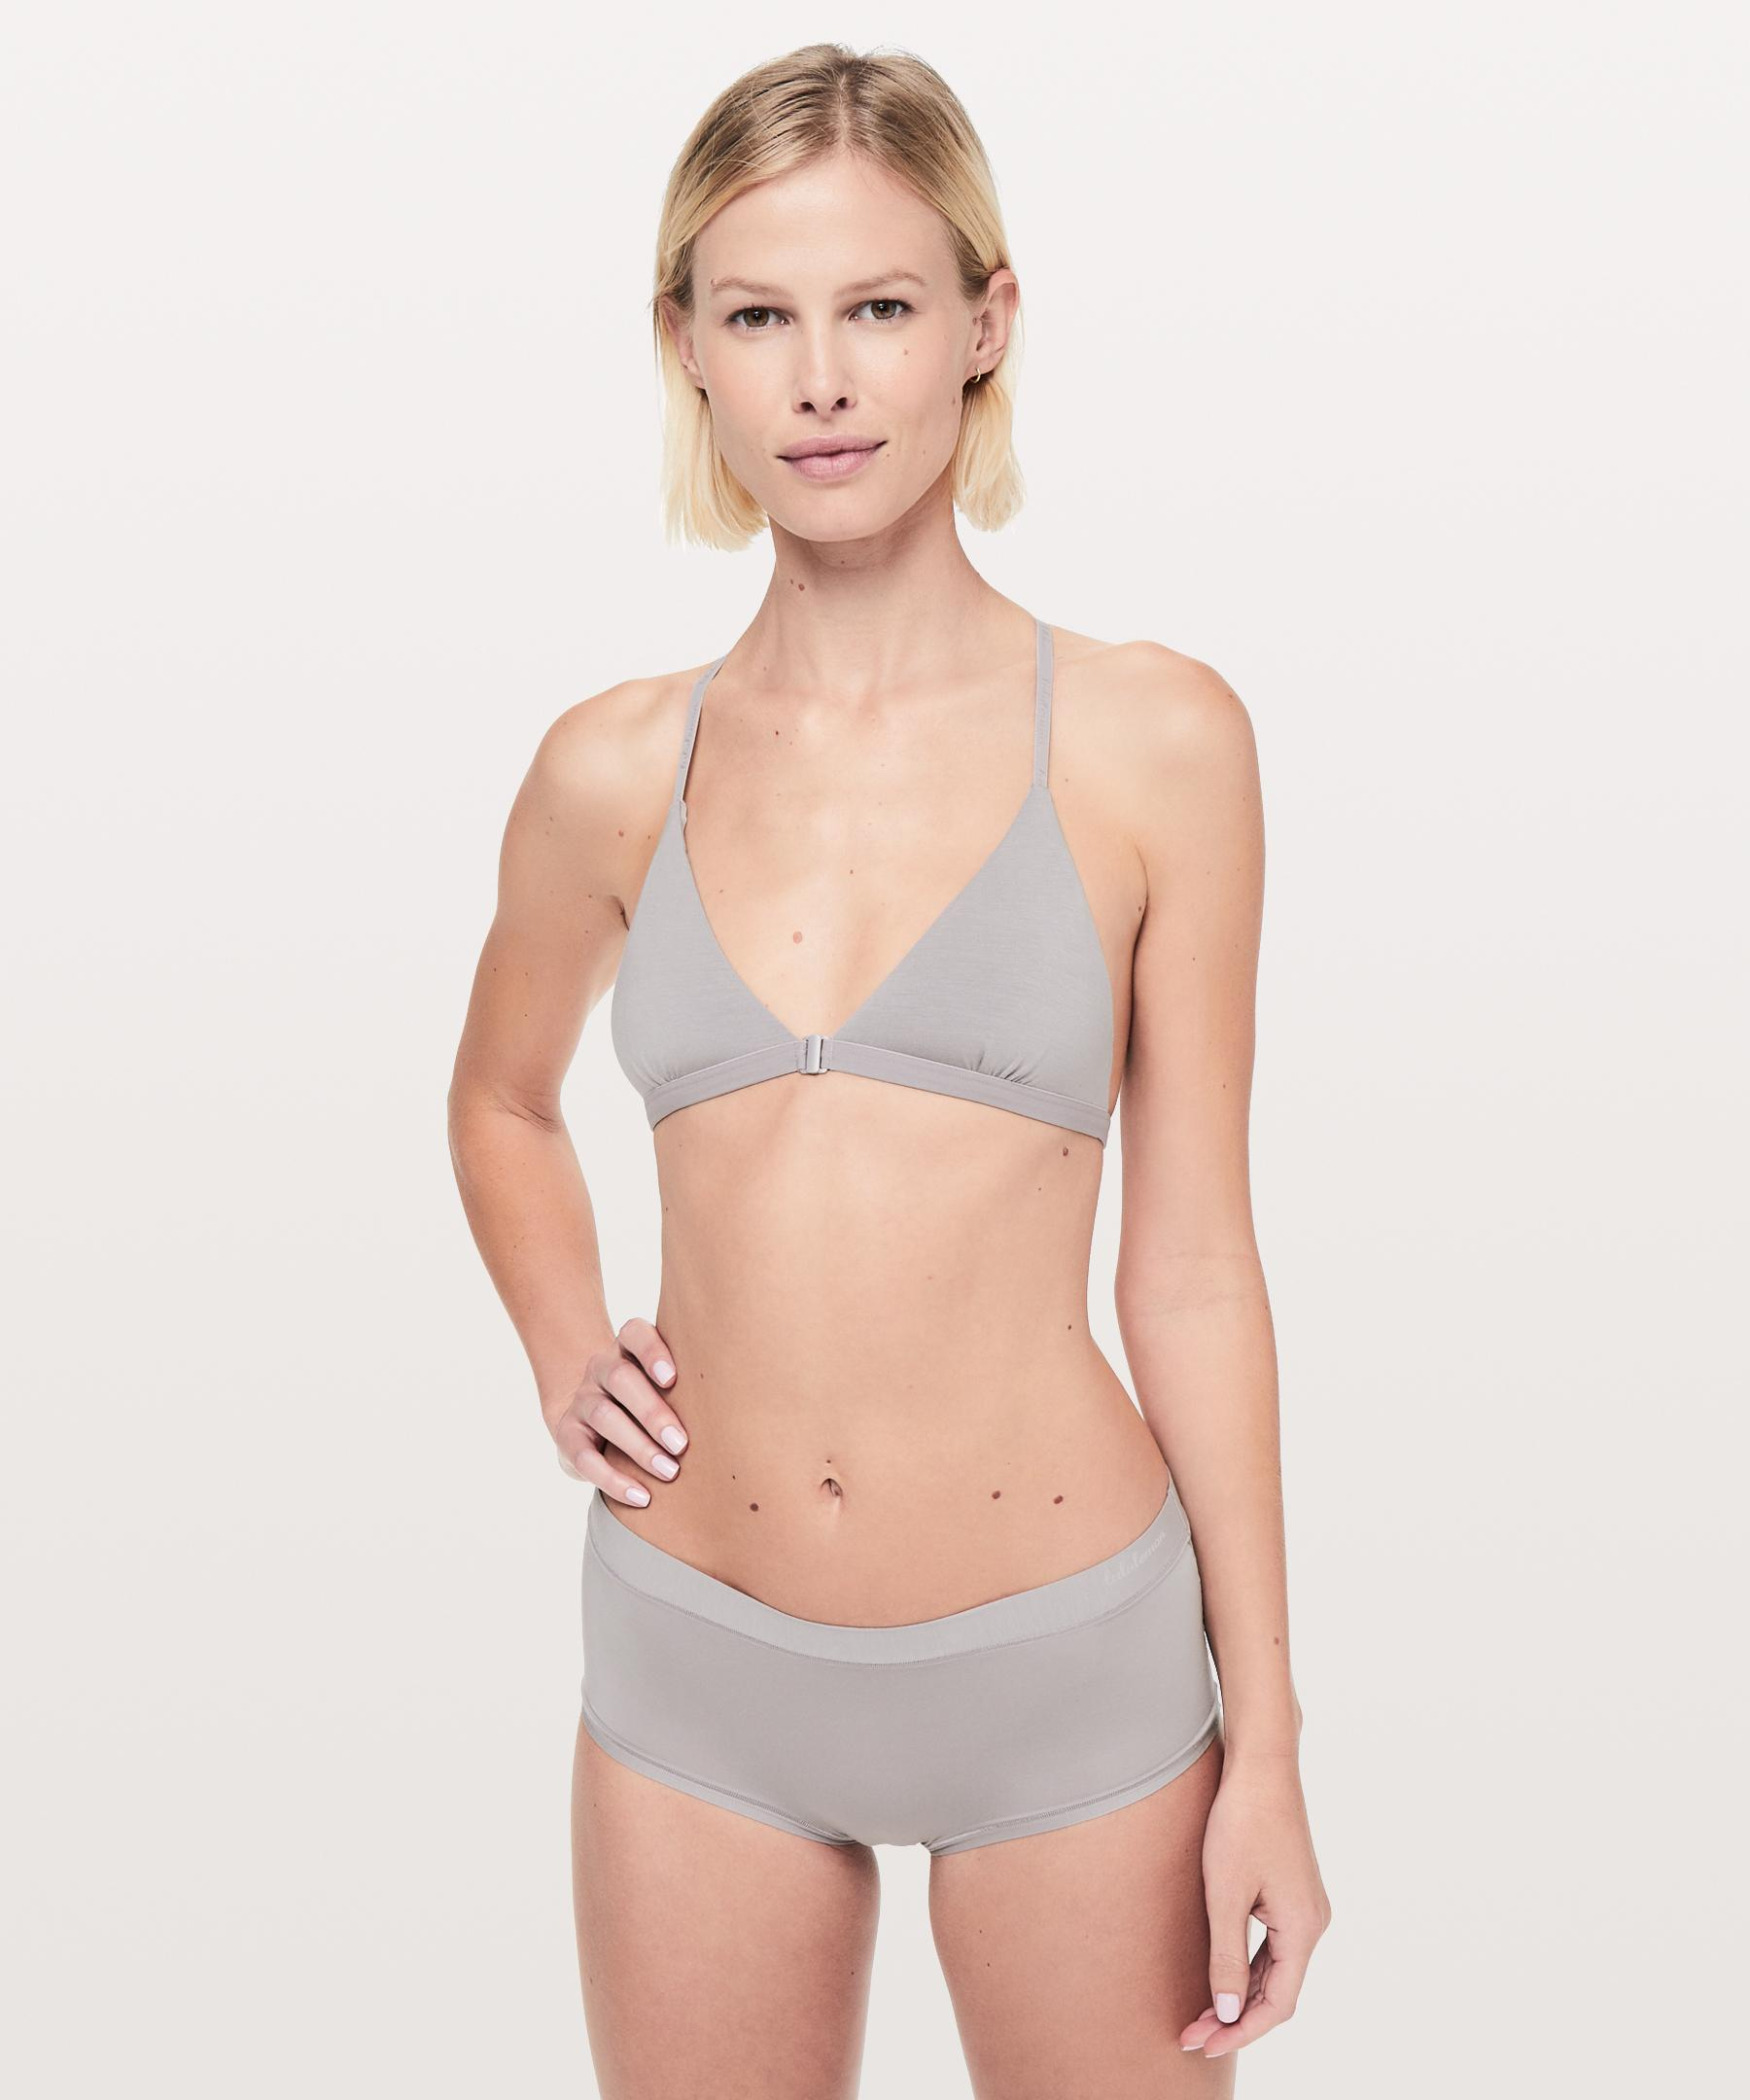 63d18be902 lululemon athletica Simply There Triangle Bralette - Lyst